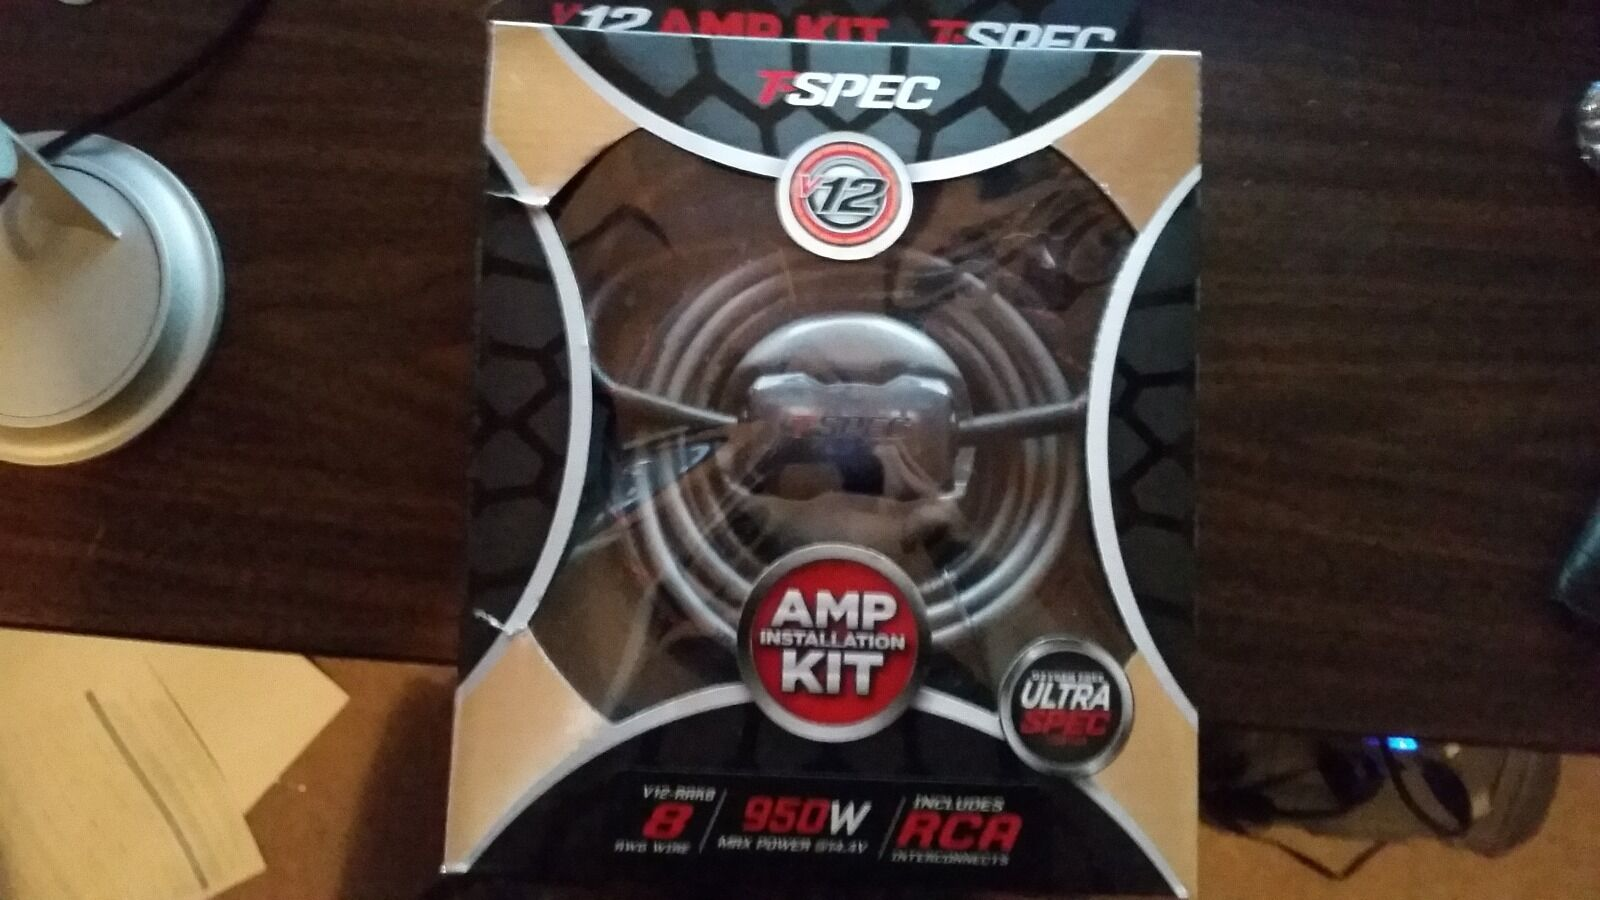 T Spec V12 8rak Complete Amp Installation Kit 8 Awg 950w With Rca Rockford Fosgate Rfk4i 4 Gauge Amplifier Wiring Cables Cable Ebay